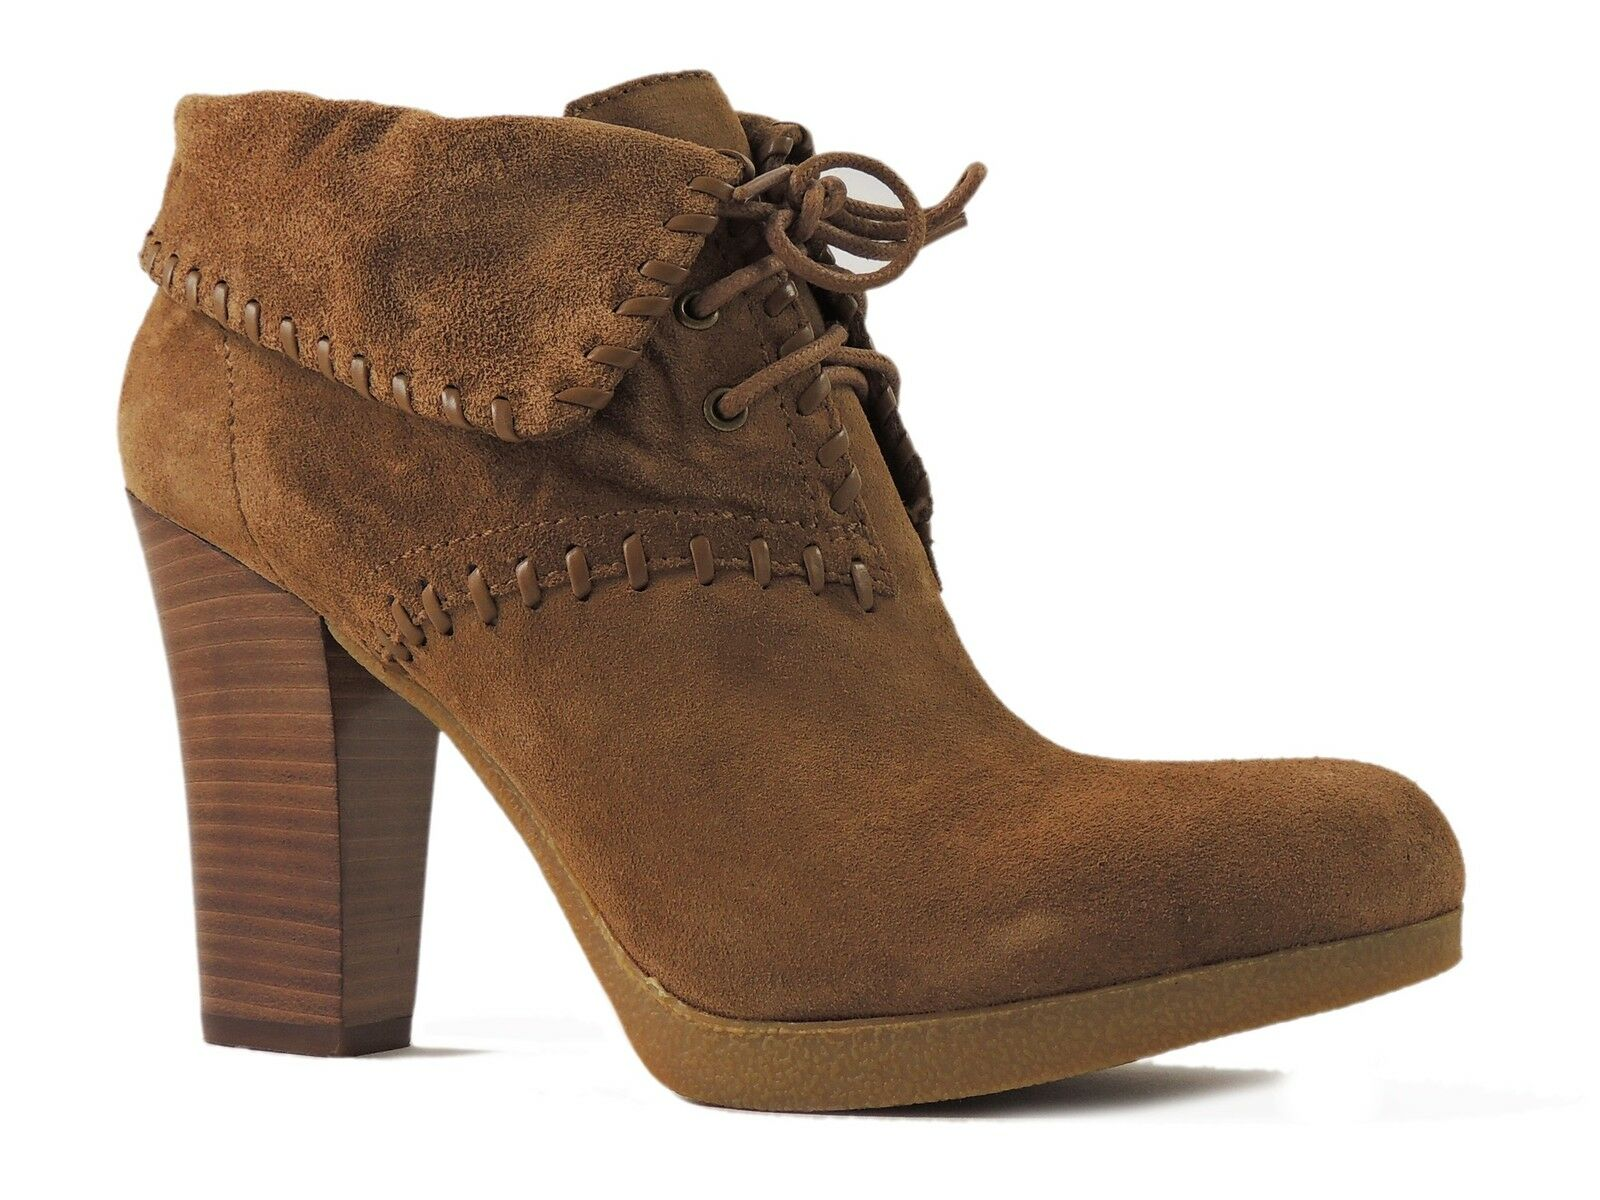 Enzo Angiolini Women's Andre Ankle Boots Natural Suede Size 10 M